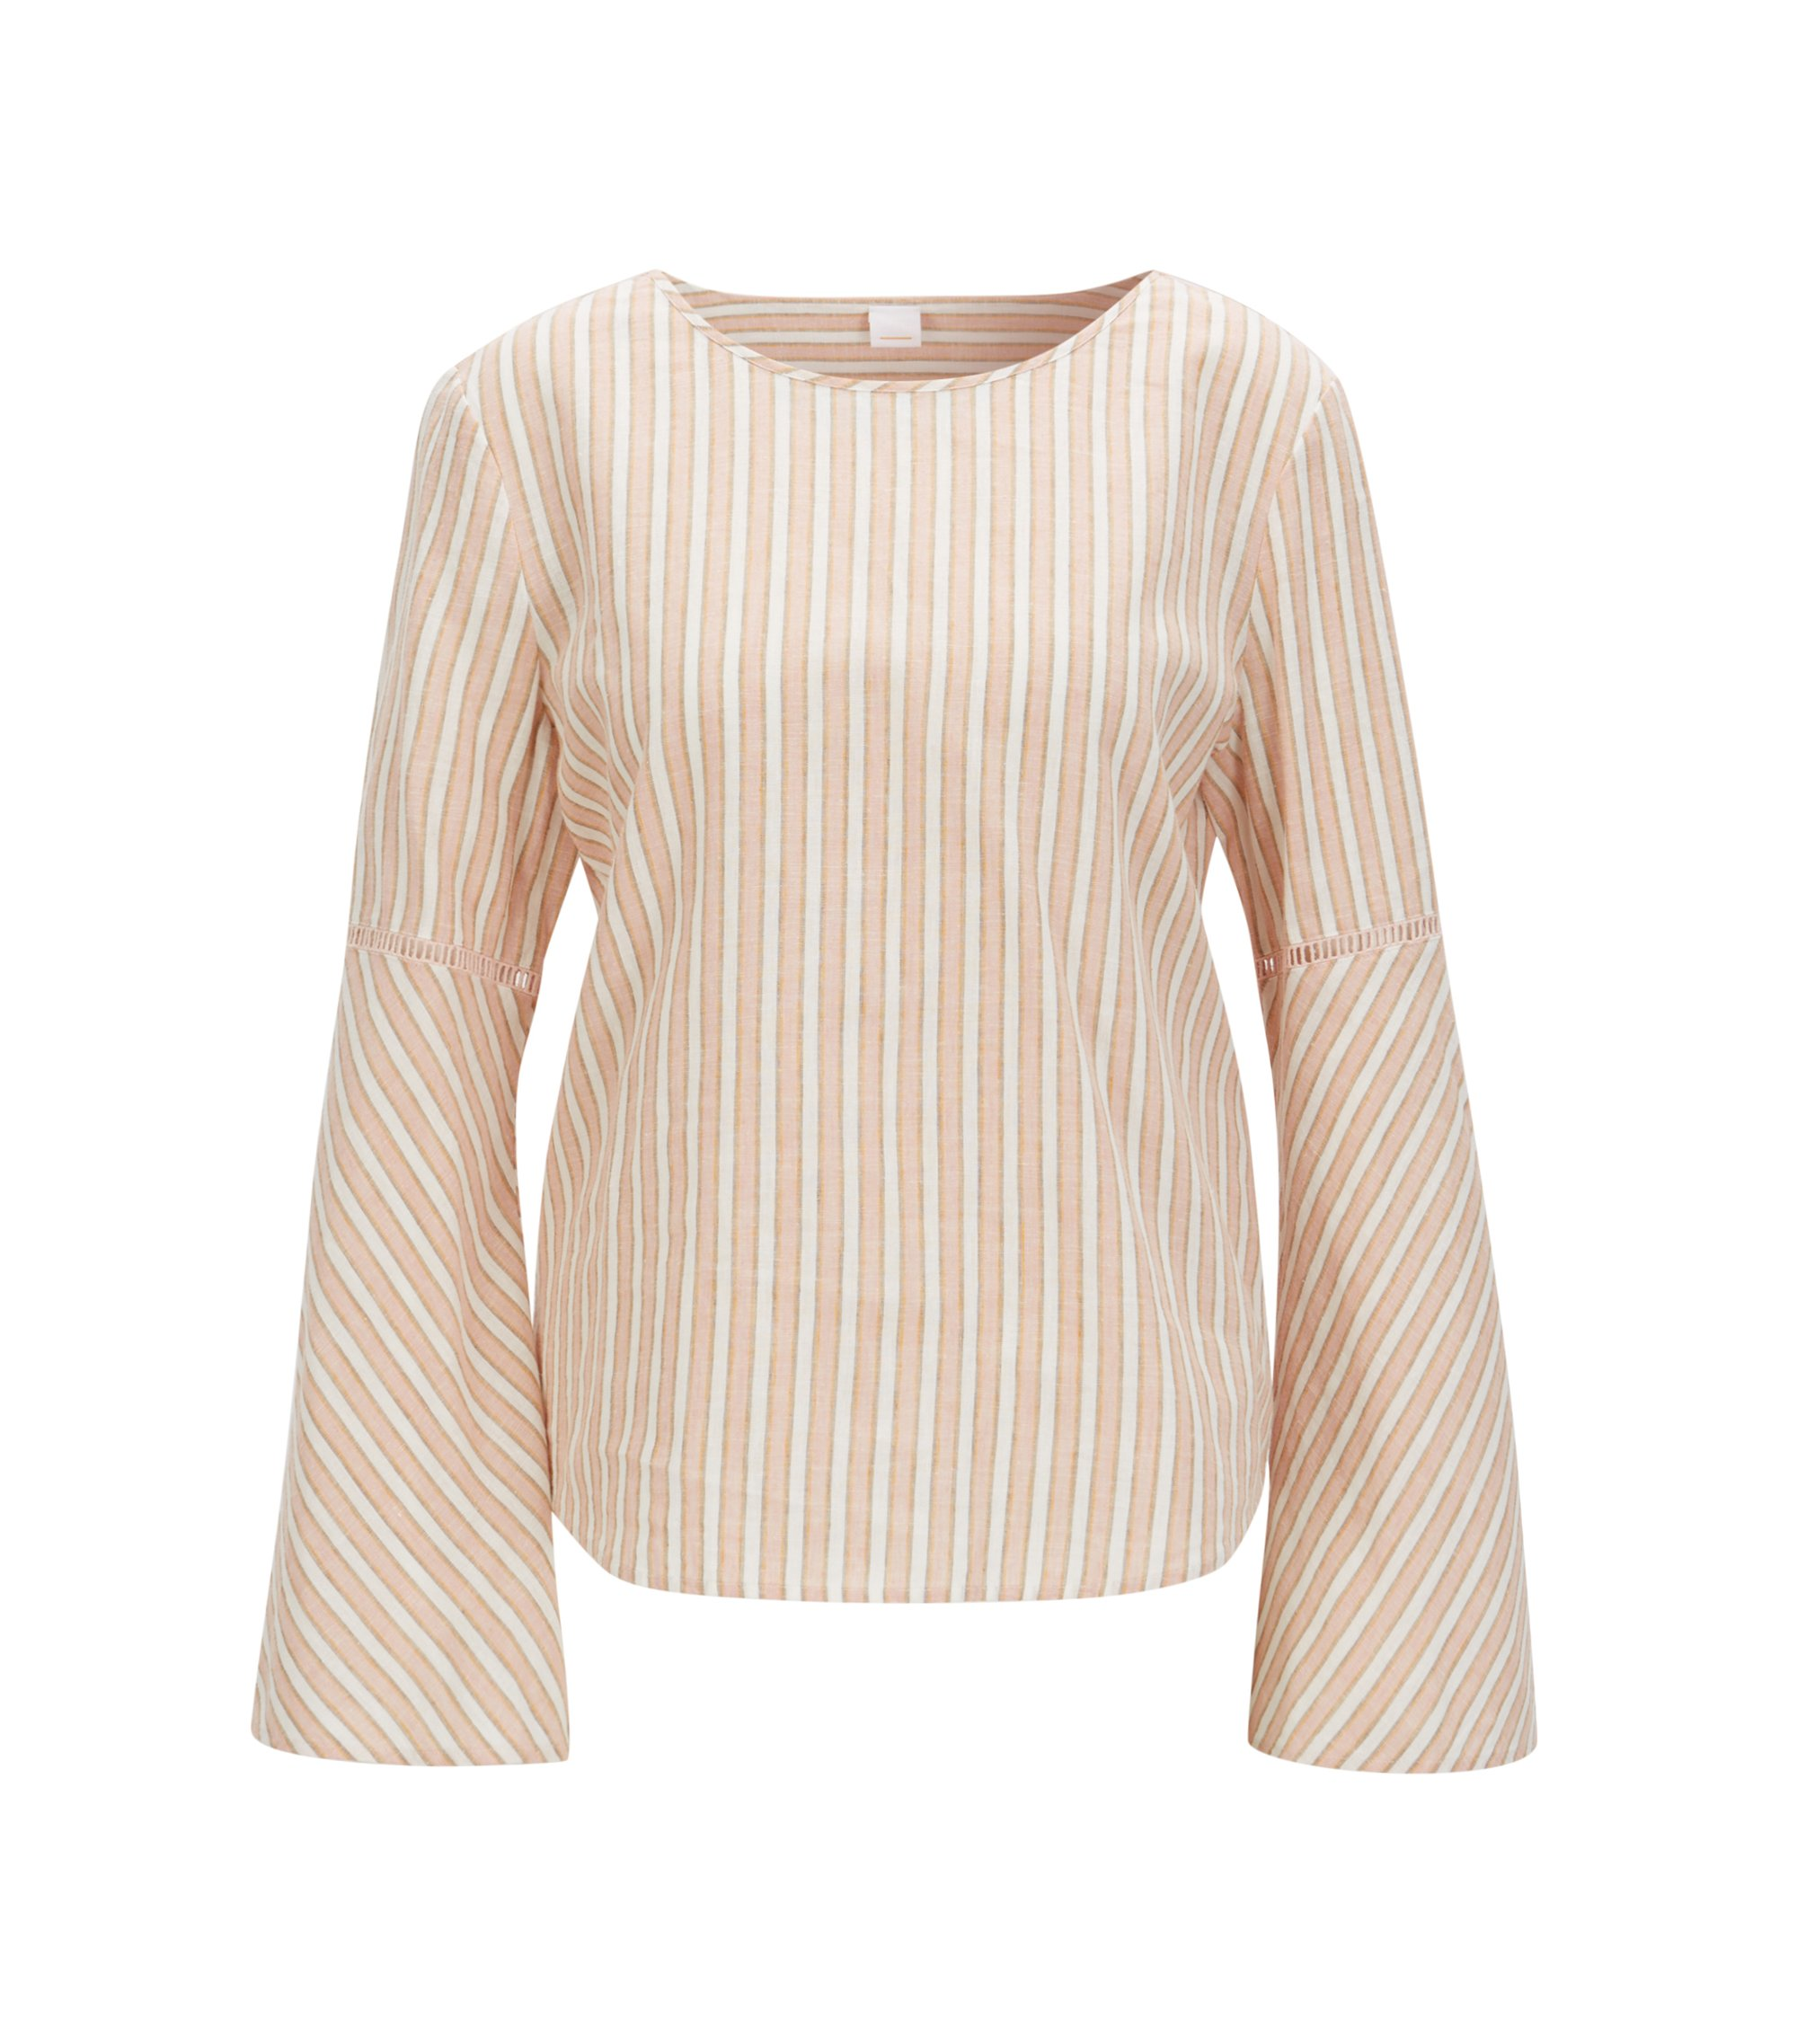 Collarless striped blouse in a linen blend, light pink